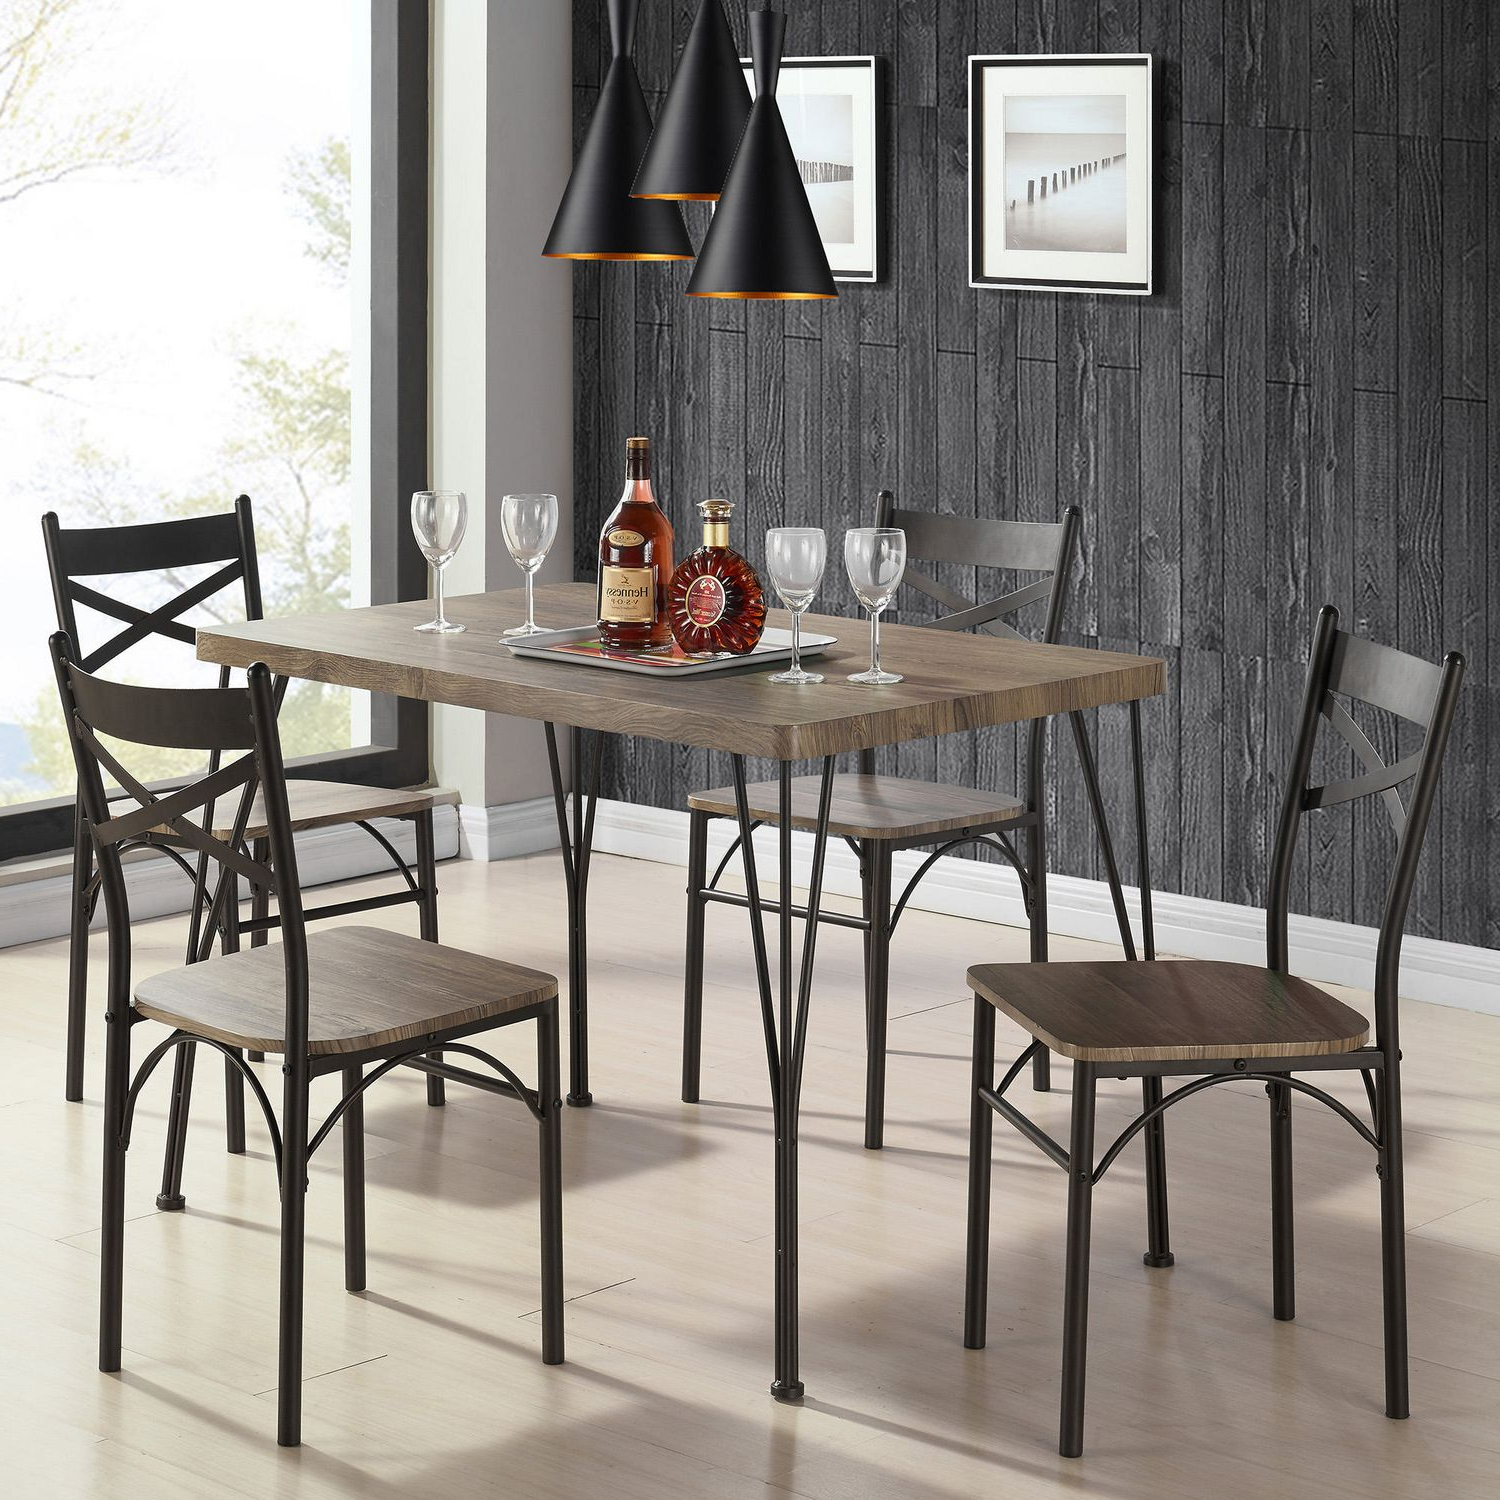 Noyes 5 Piece Dining Sets Throughout Popular Dining Table Set – 5 Pc (View 15 of 25)